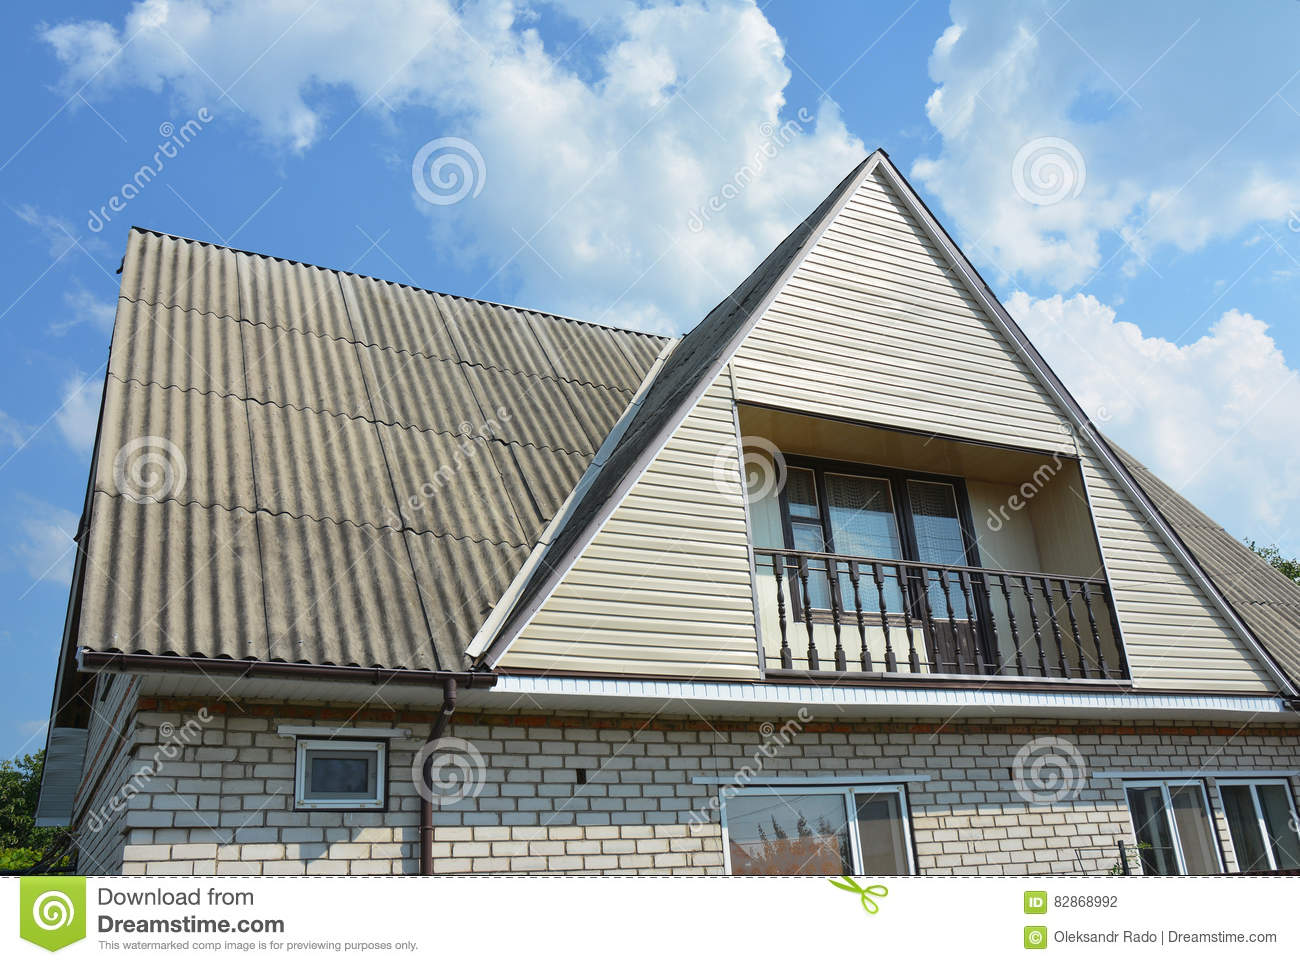 Main types of work on building a house